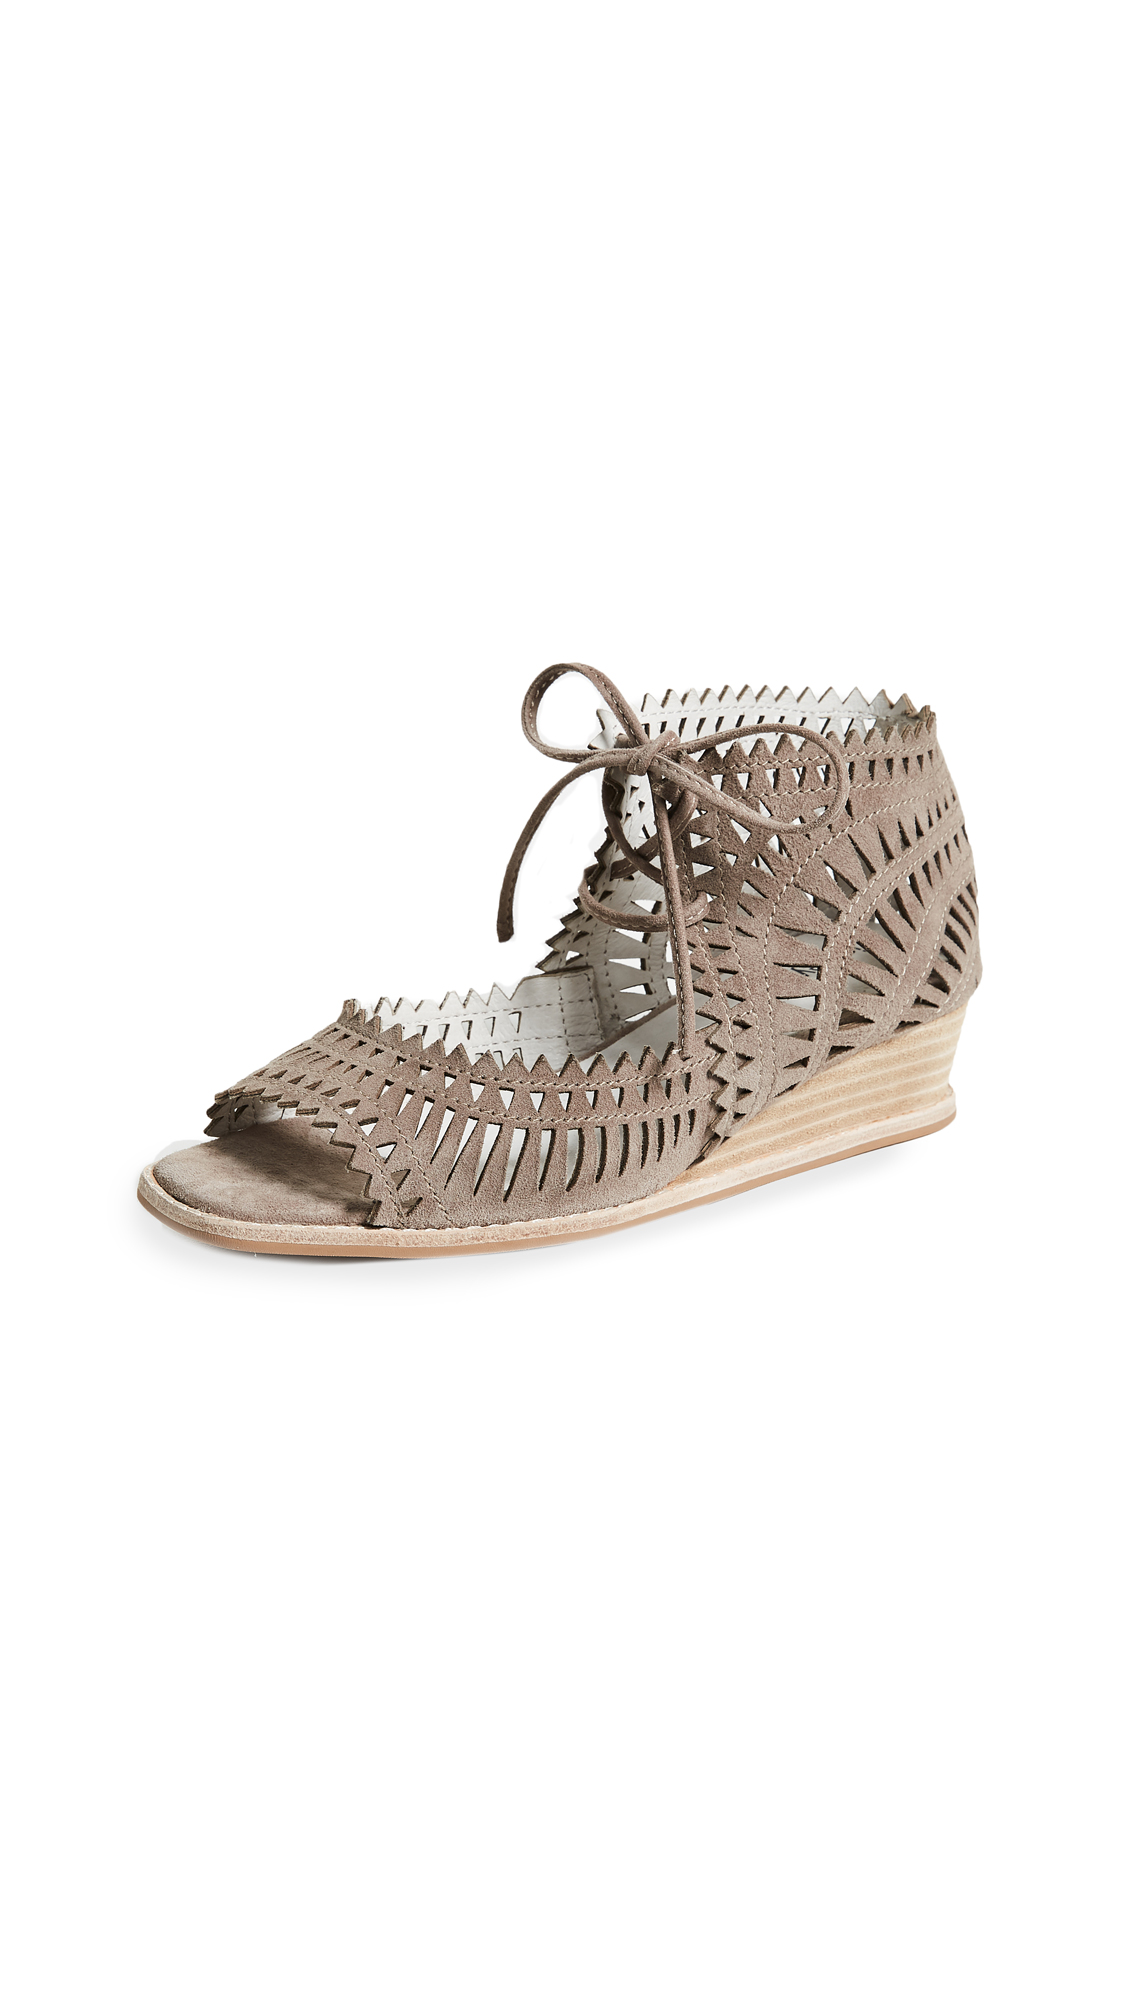 Jeffrey Campbell Rodillo Wedge Sandals - Taupe